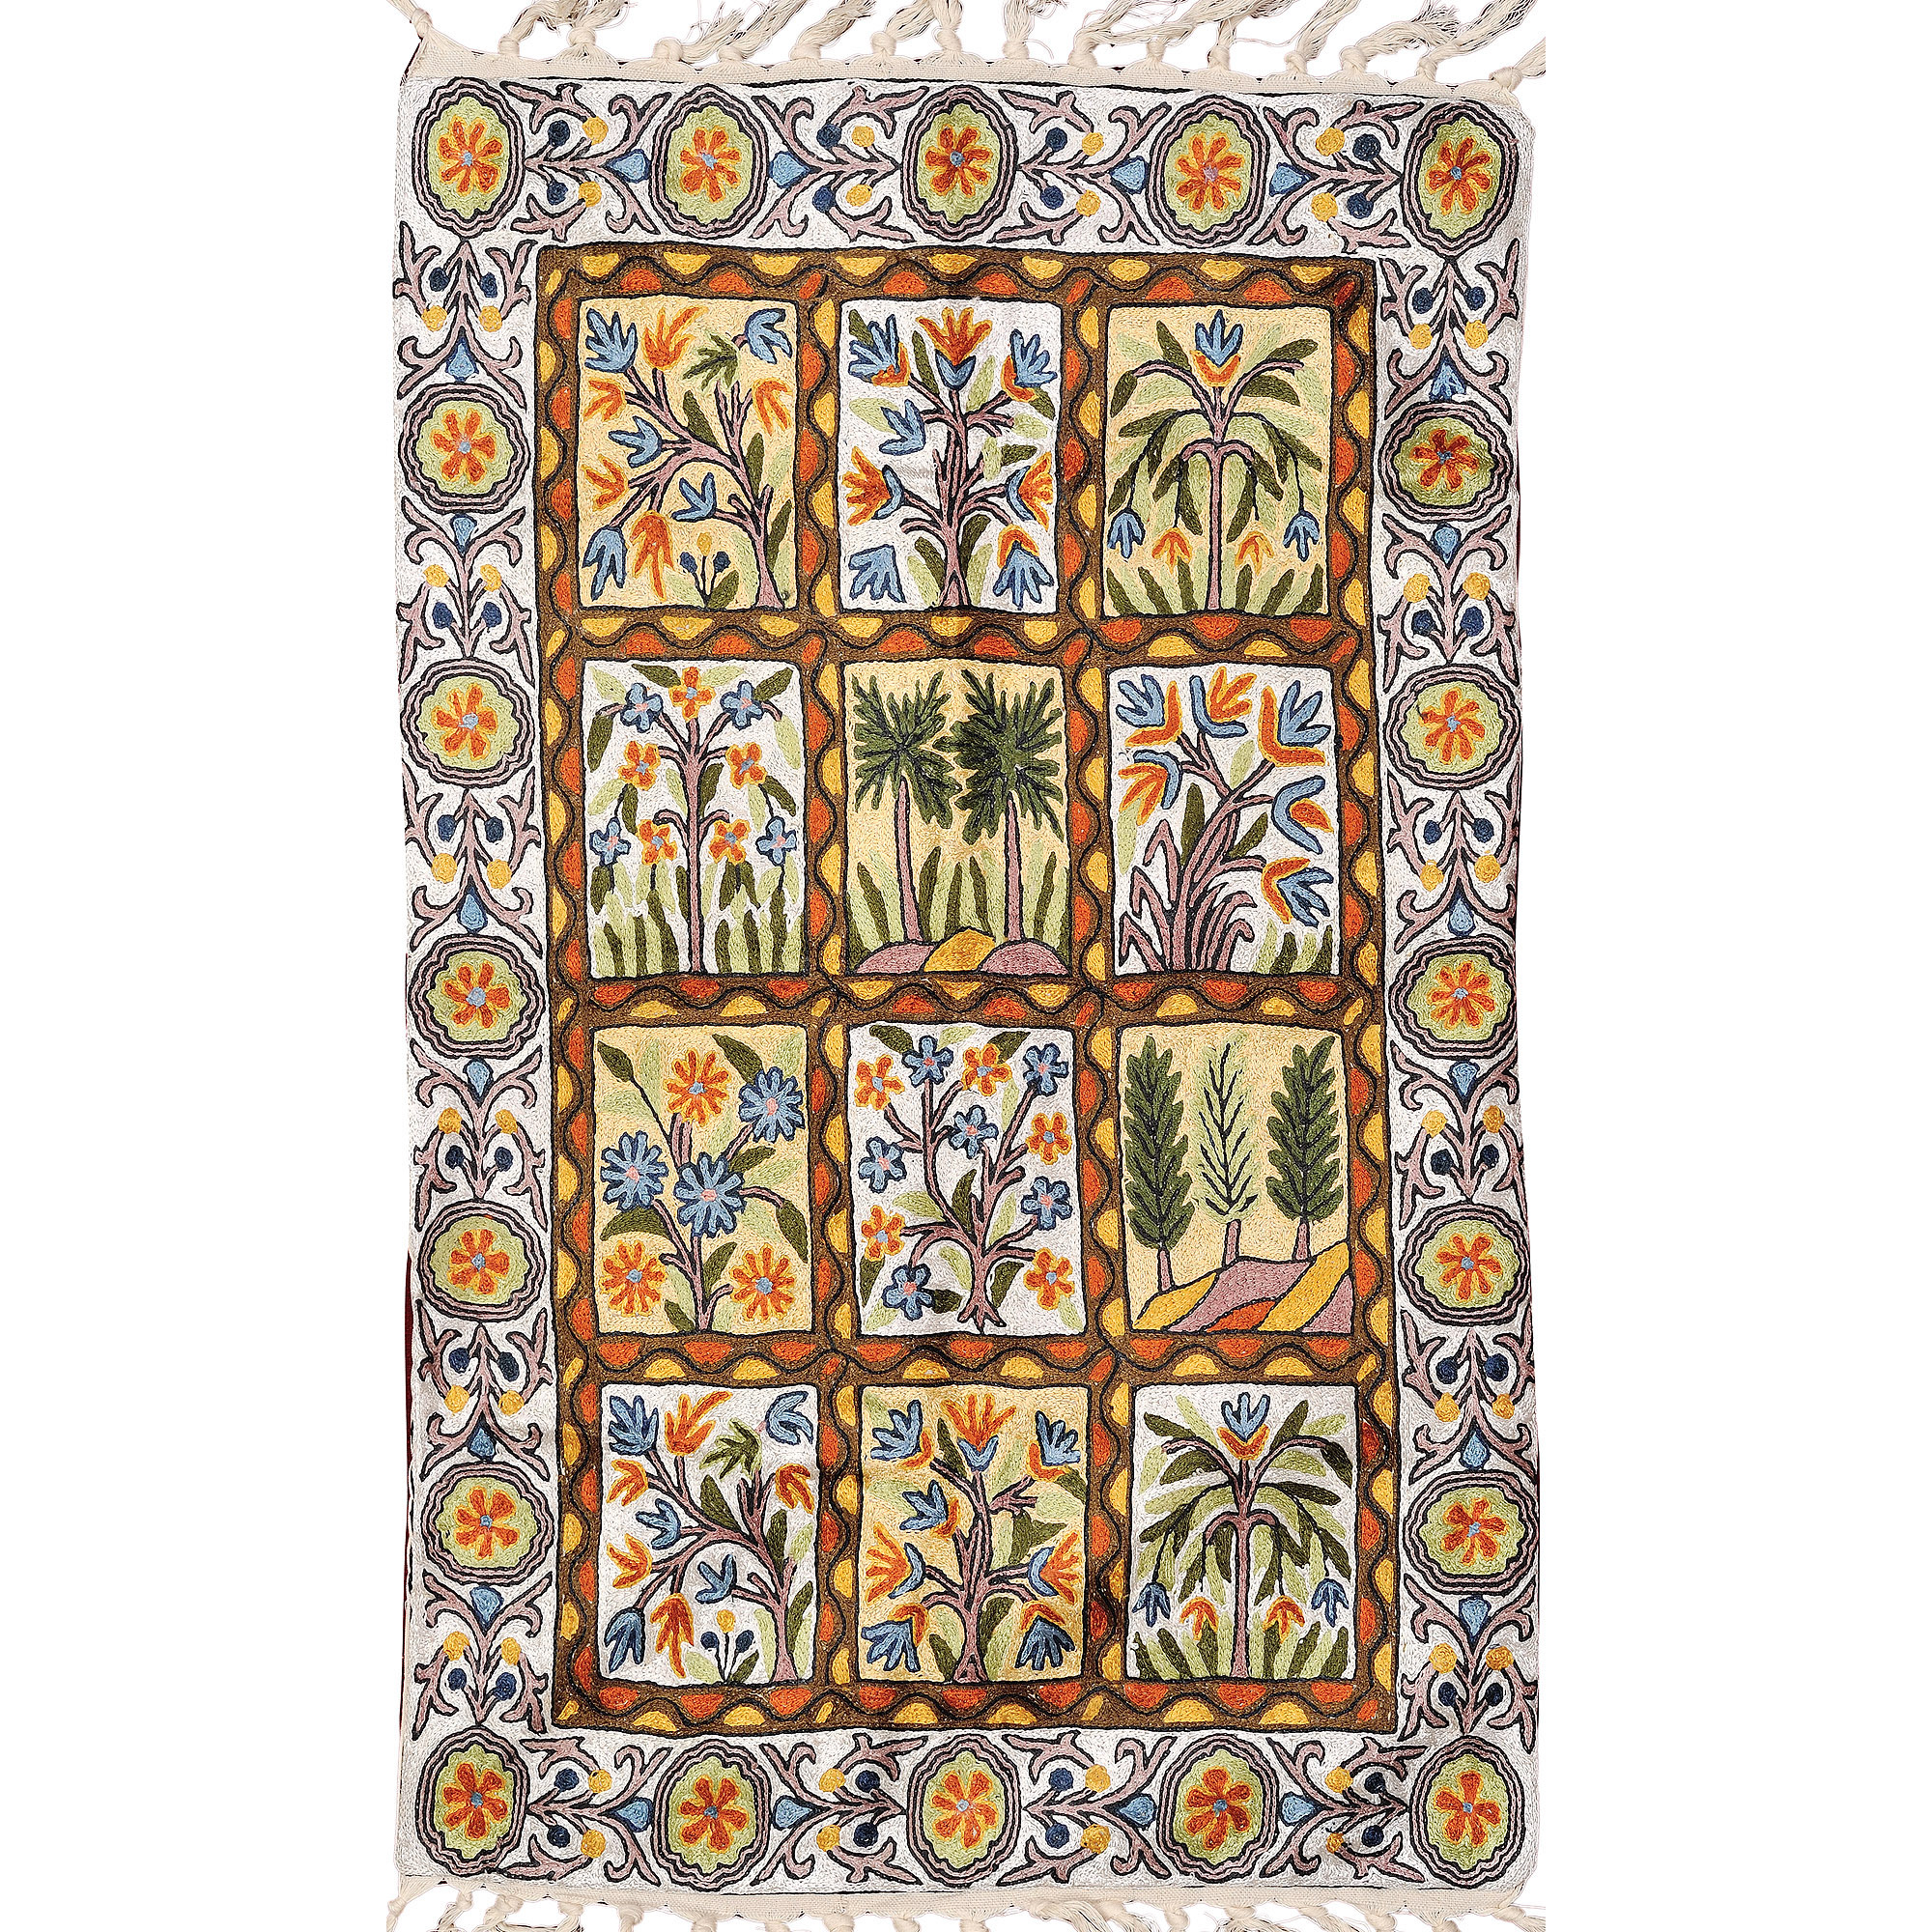 Star-White Islamic Prayer Rug with Embroidered Trees